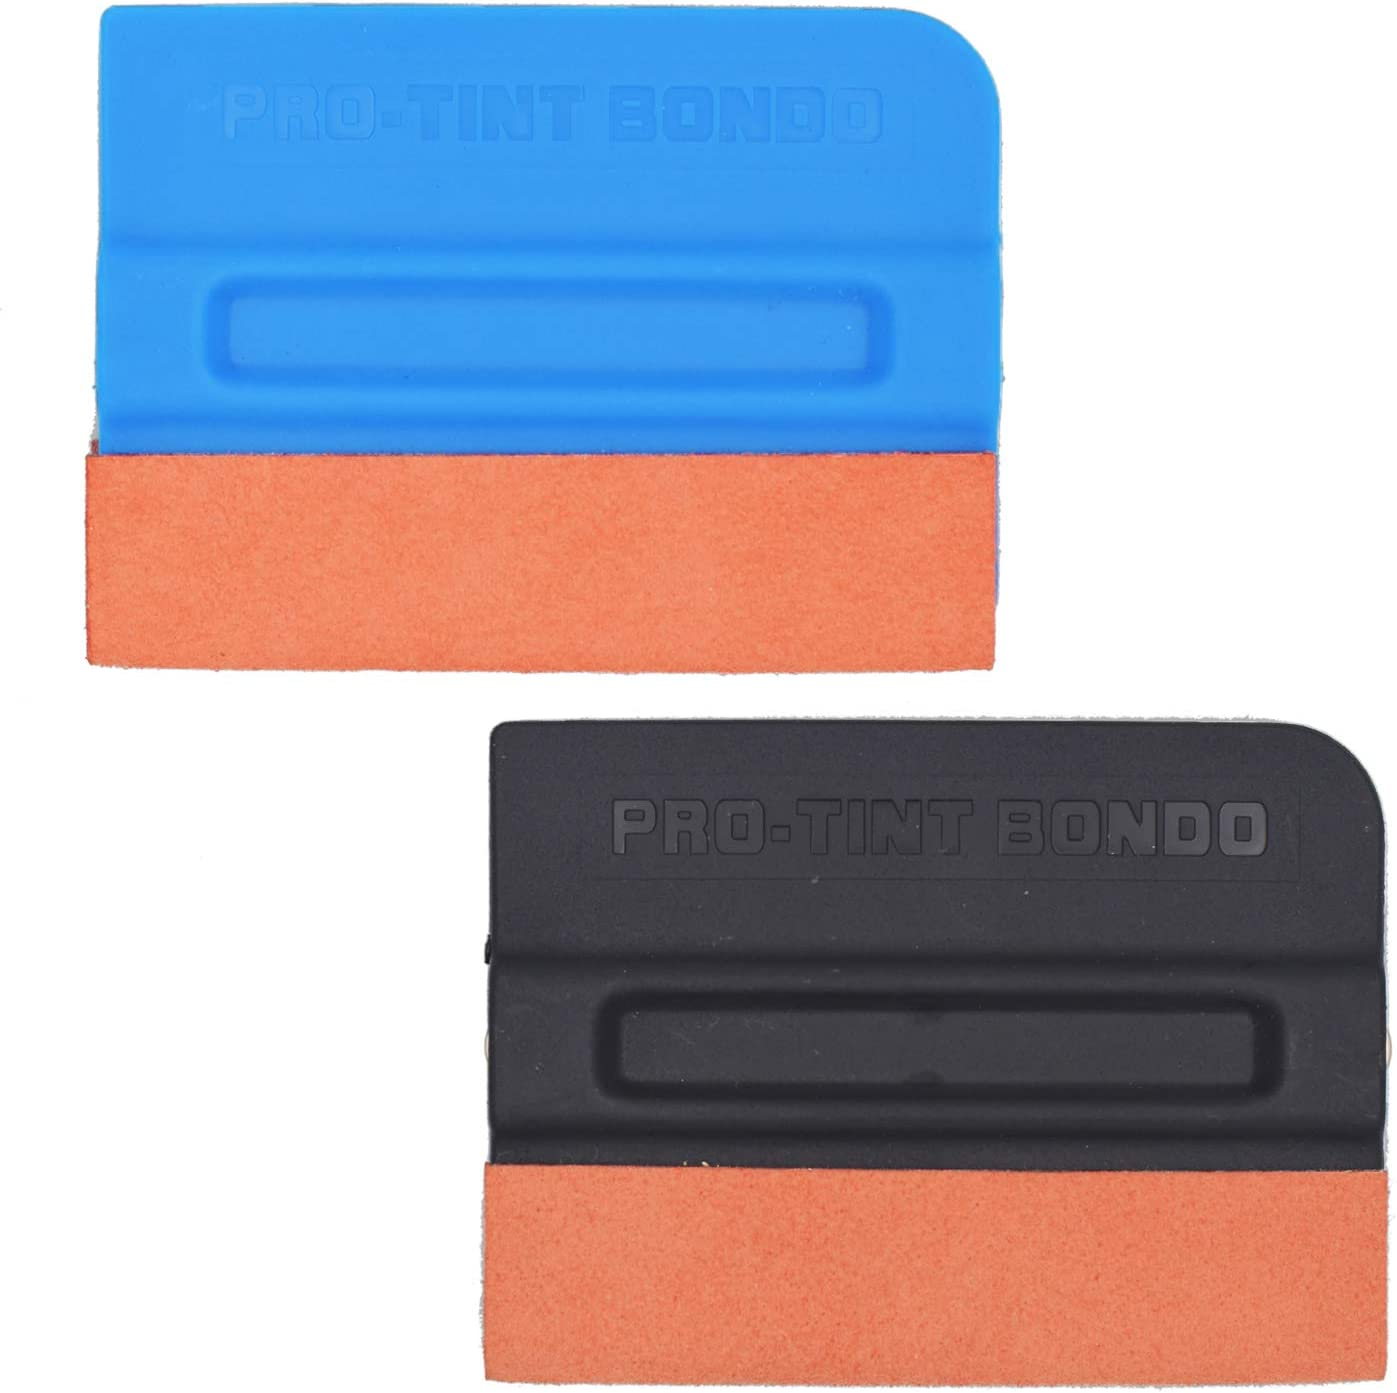 1PCS Pro-Tint Bondo Vinyl Squeegee Soft Suede Felt Window Tint Car Wrapping Tool